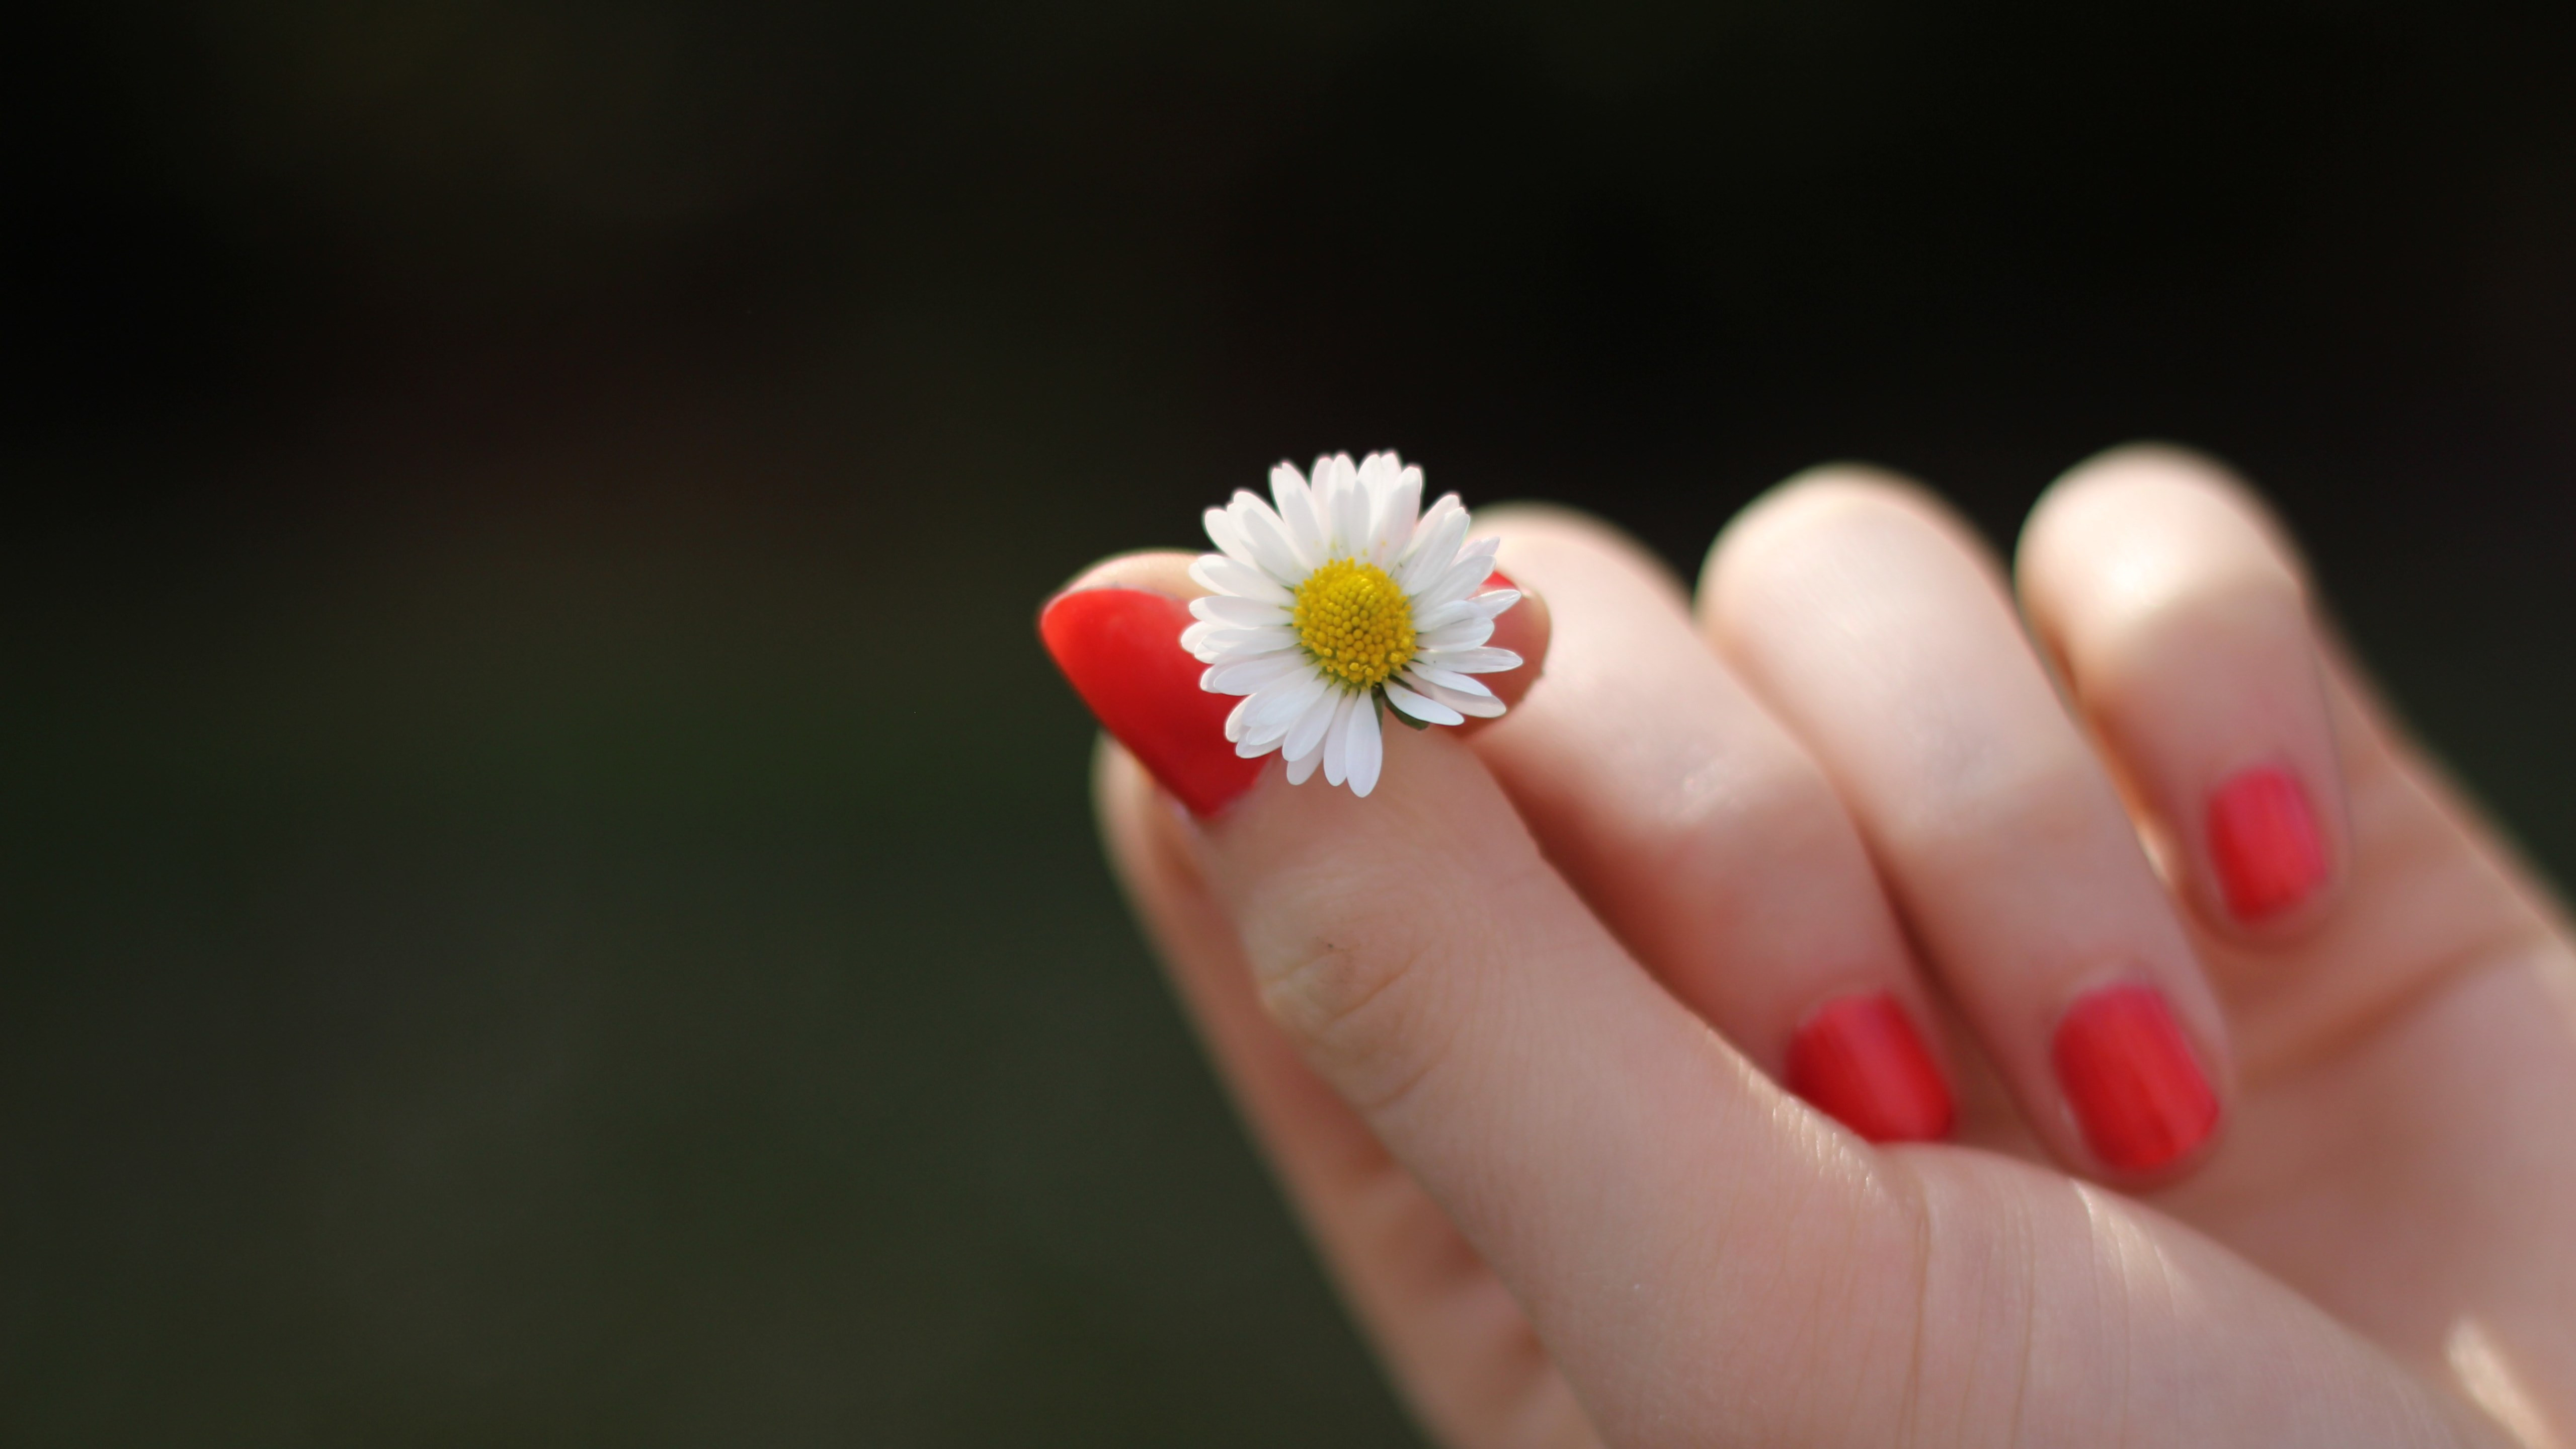 Girl with red nails and a daisy flower wallpaper 5120x2880